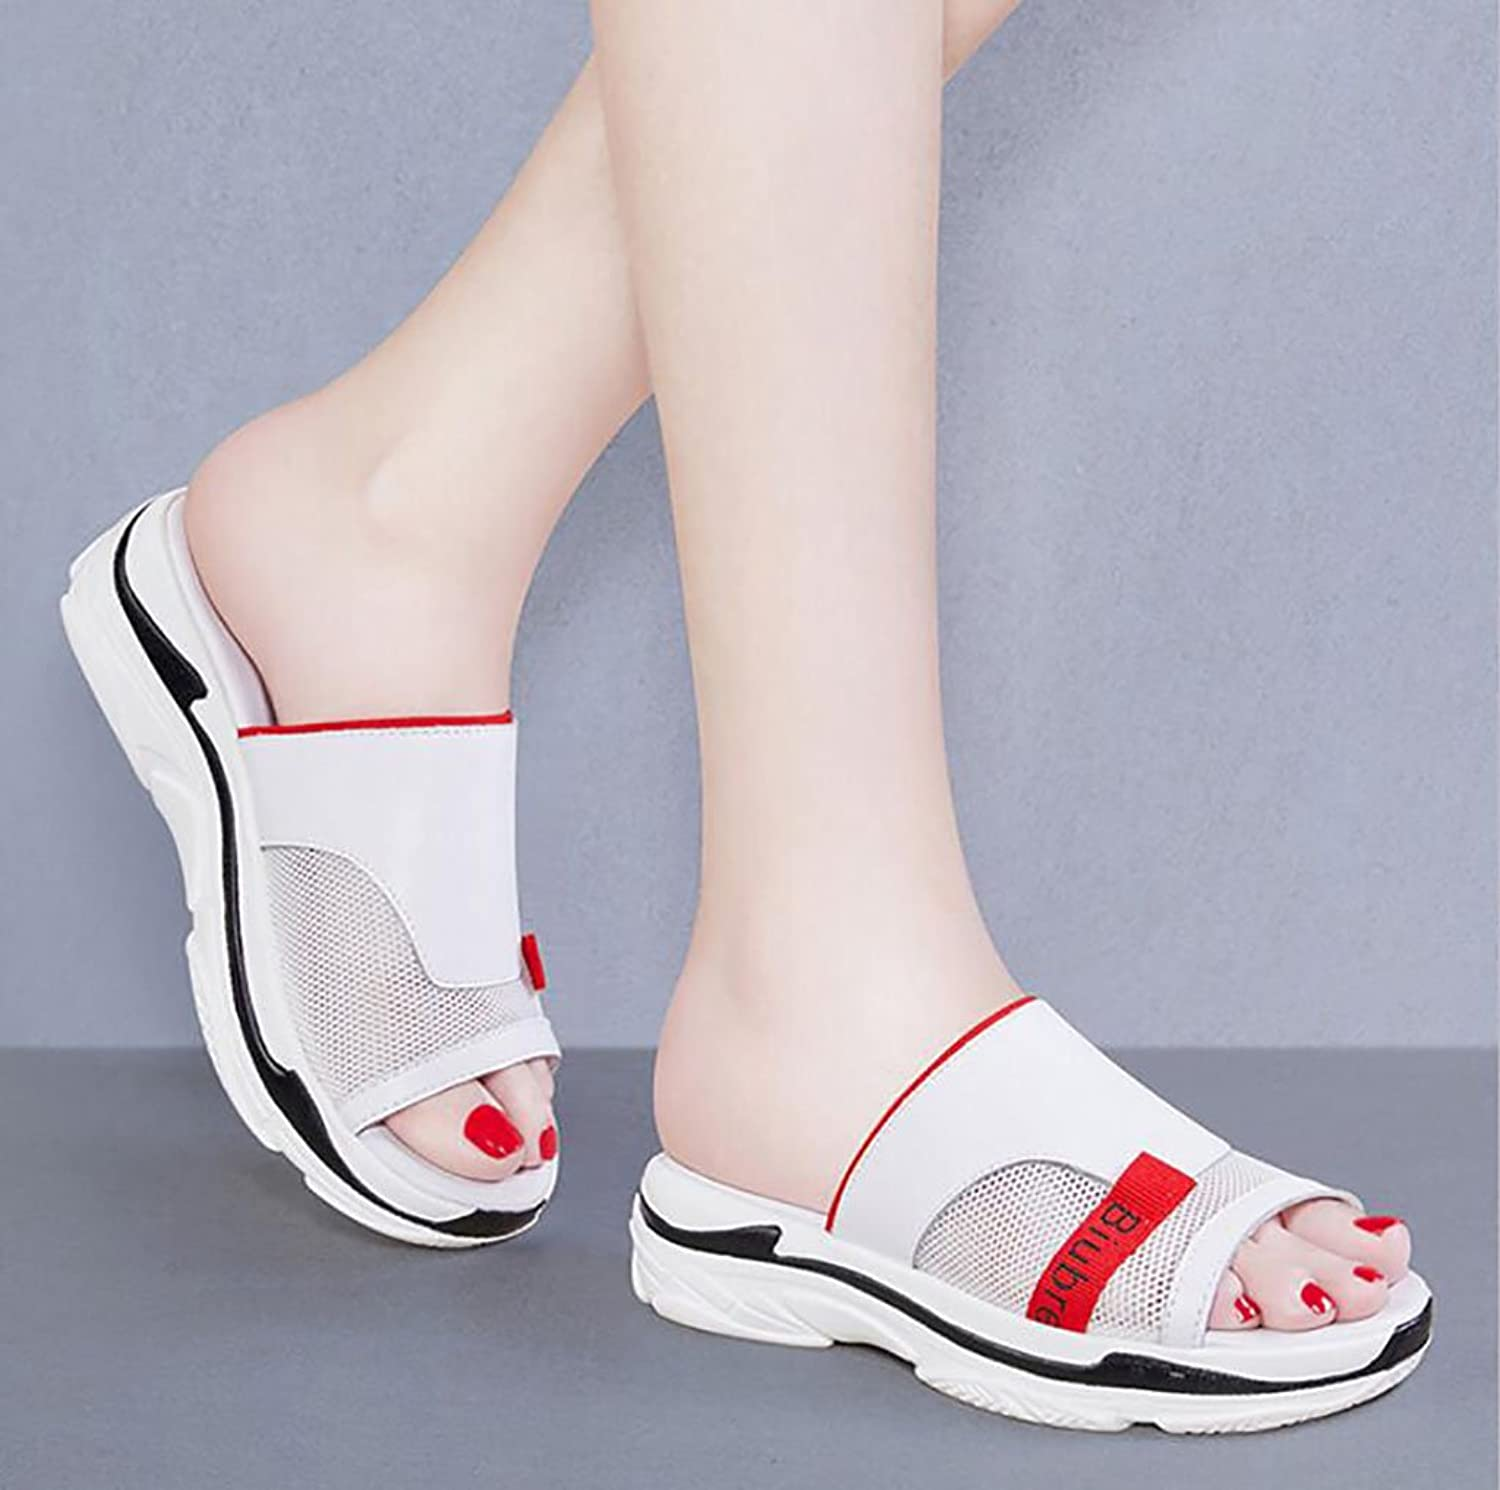 Slipper Ladies Fashion wear with Summer Sandals and Slippers Wild Korean Version of The Sandals Flat Sandals,Fashion Sandals (color   B, Size   34)